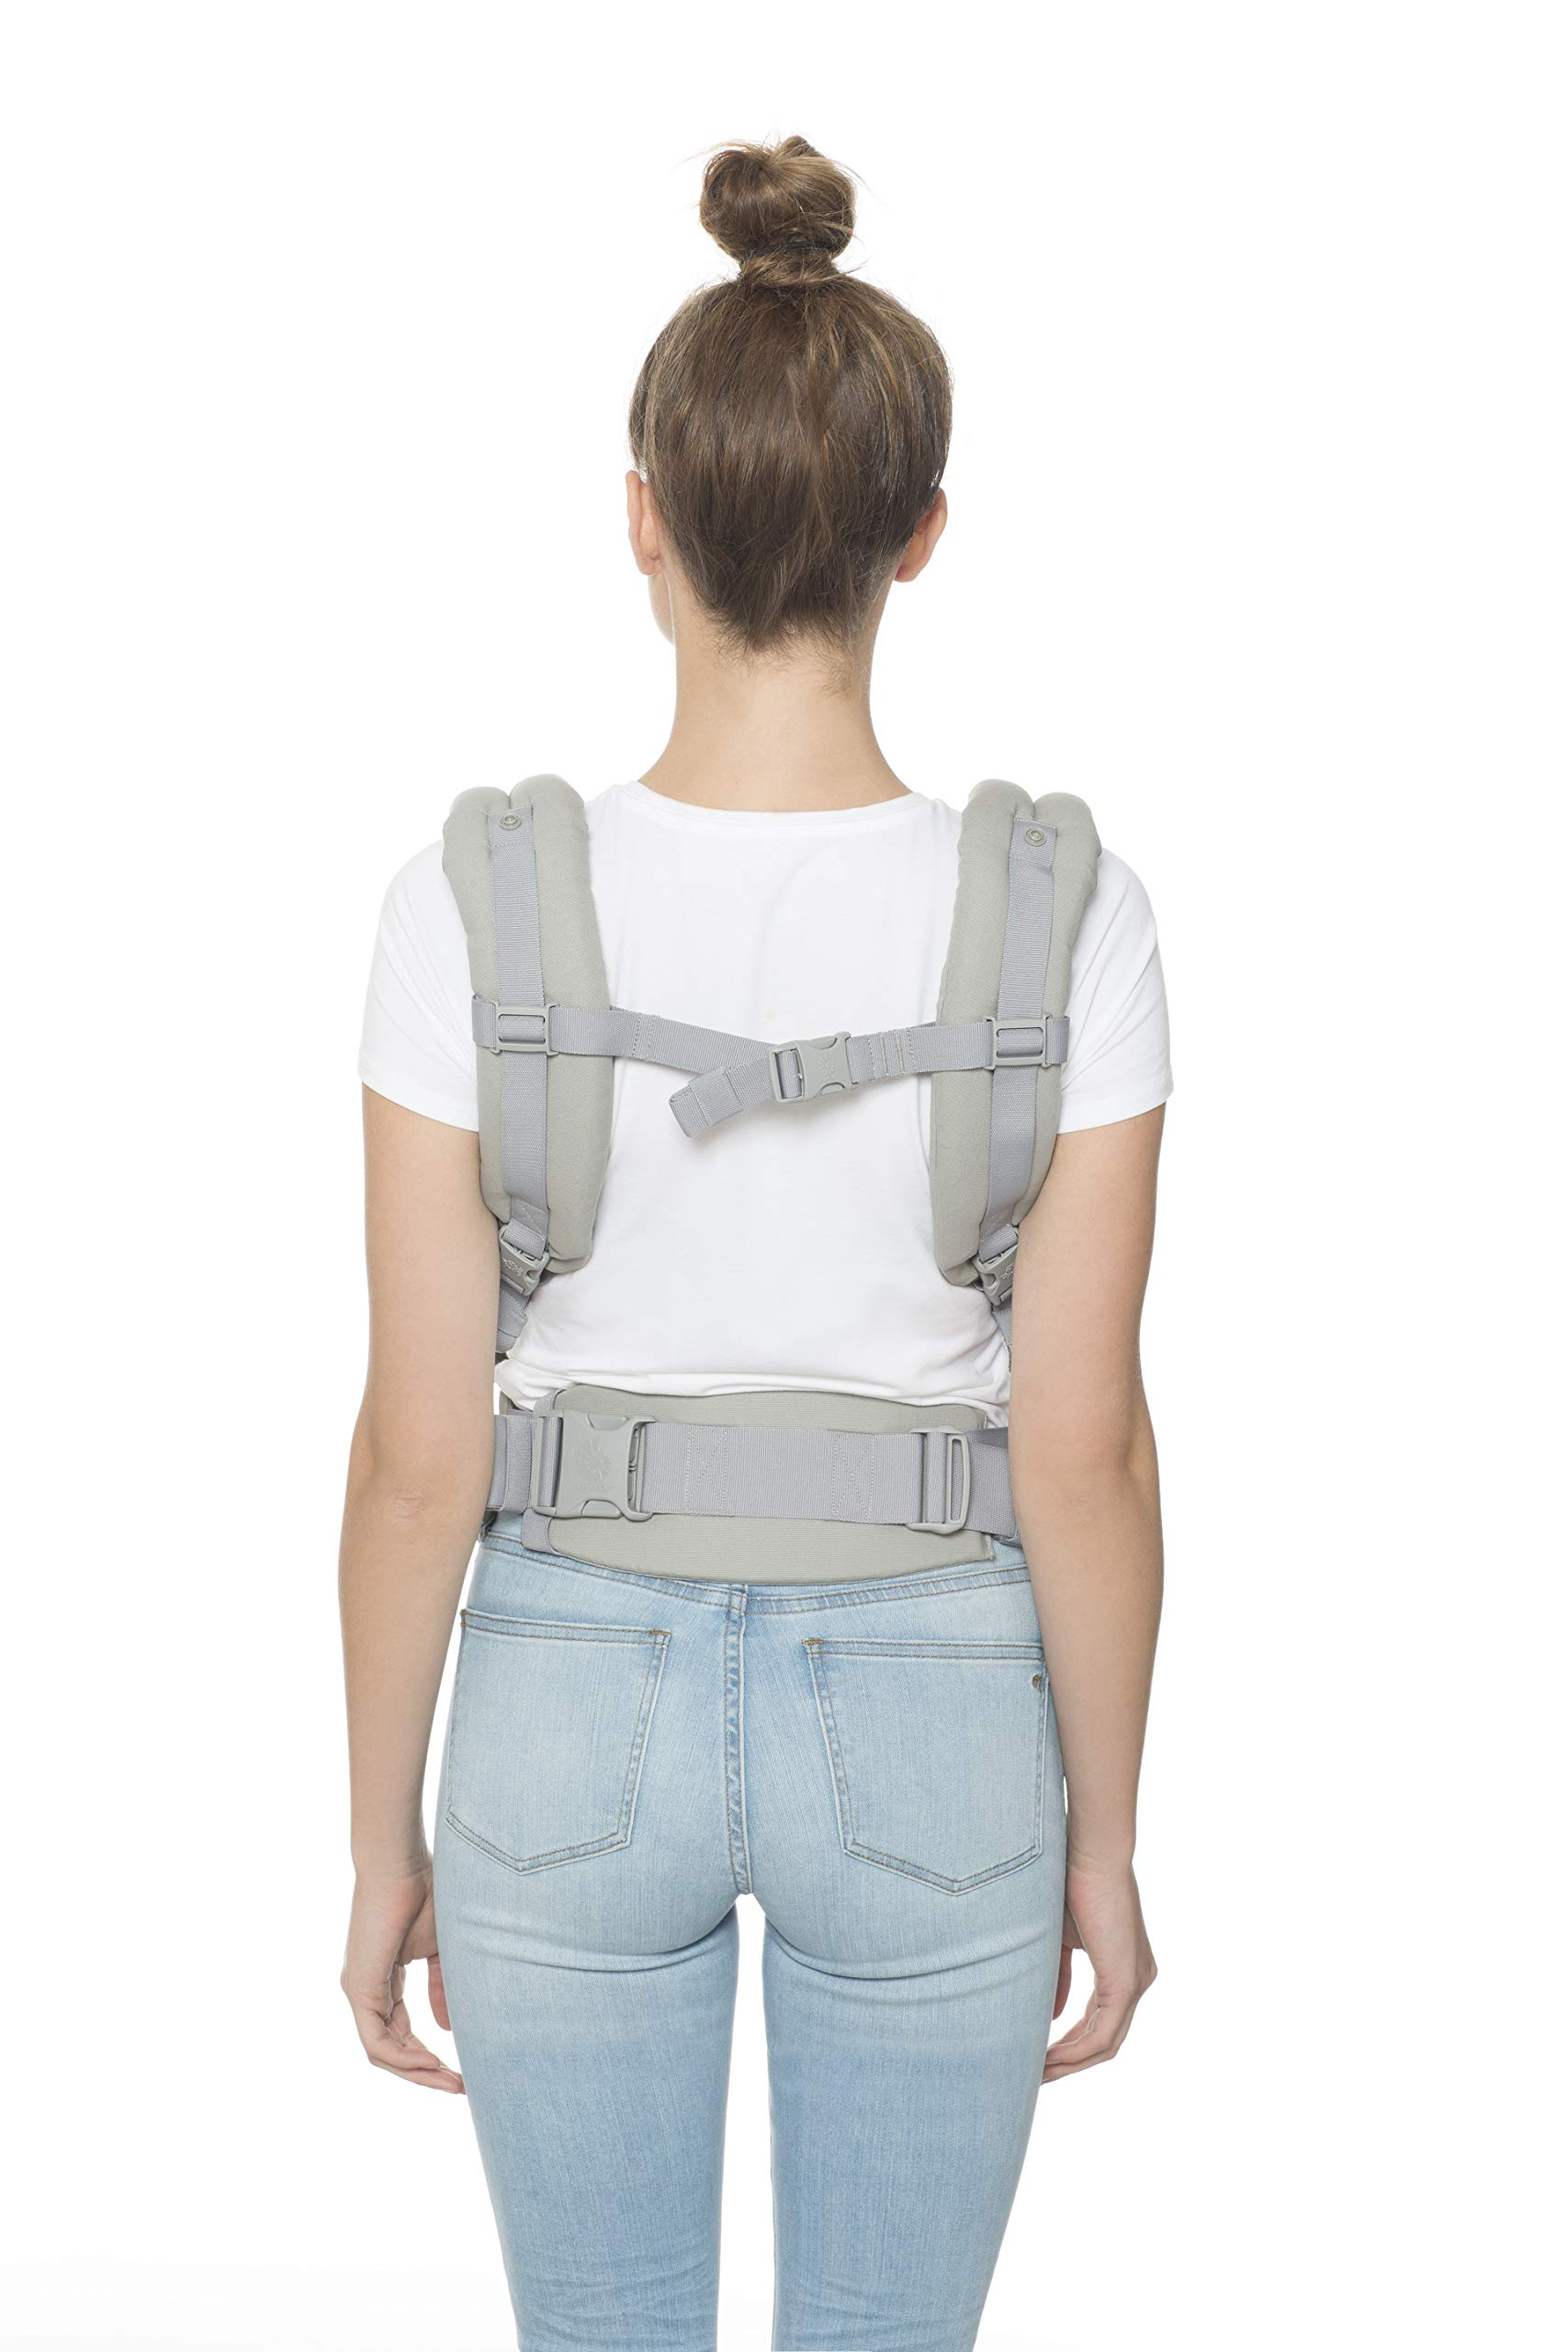 """Ergobaby Front and Back Original Baby Carrier, Pearl Grey Ergobaby Ergonomic babycarrier - ergonomic for baby with wide deep seat for a spread-squat, natural """"m"""" seated position. Baby carrying system with 3carry positions:  front-inward, hip and back. from baby to toddler: 5.5*-20kg Maximum wearing comfort - lumbar support waist belt (adjustable from 66-140cm / 26-52in) that can be adjusted to the height of the carry position. 10"""